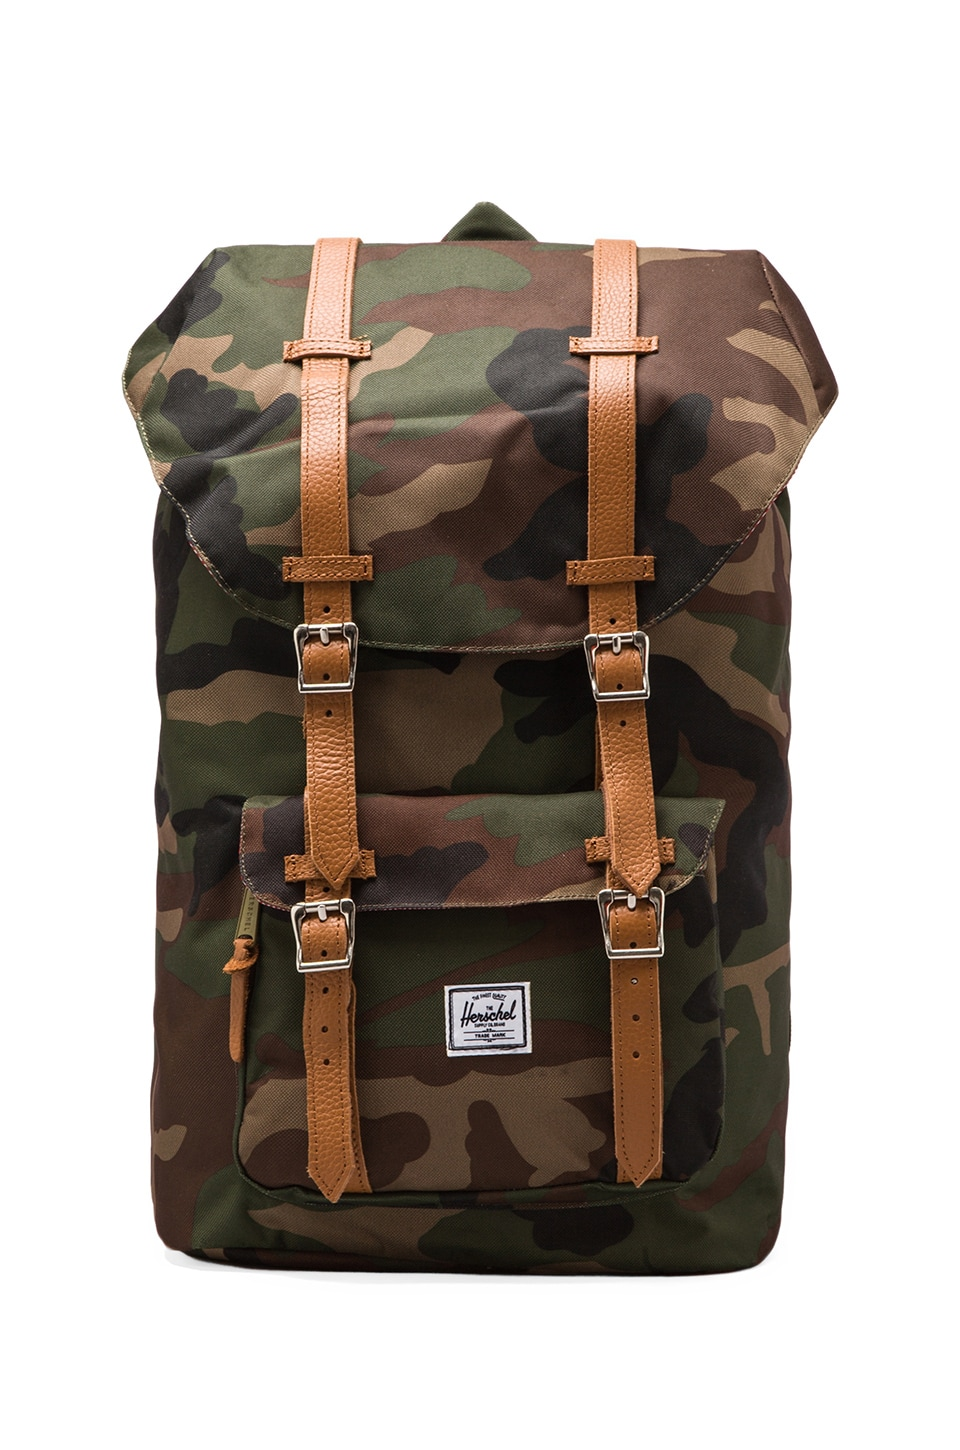 Herschel Supply Co. Little America Backpack in Camo